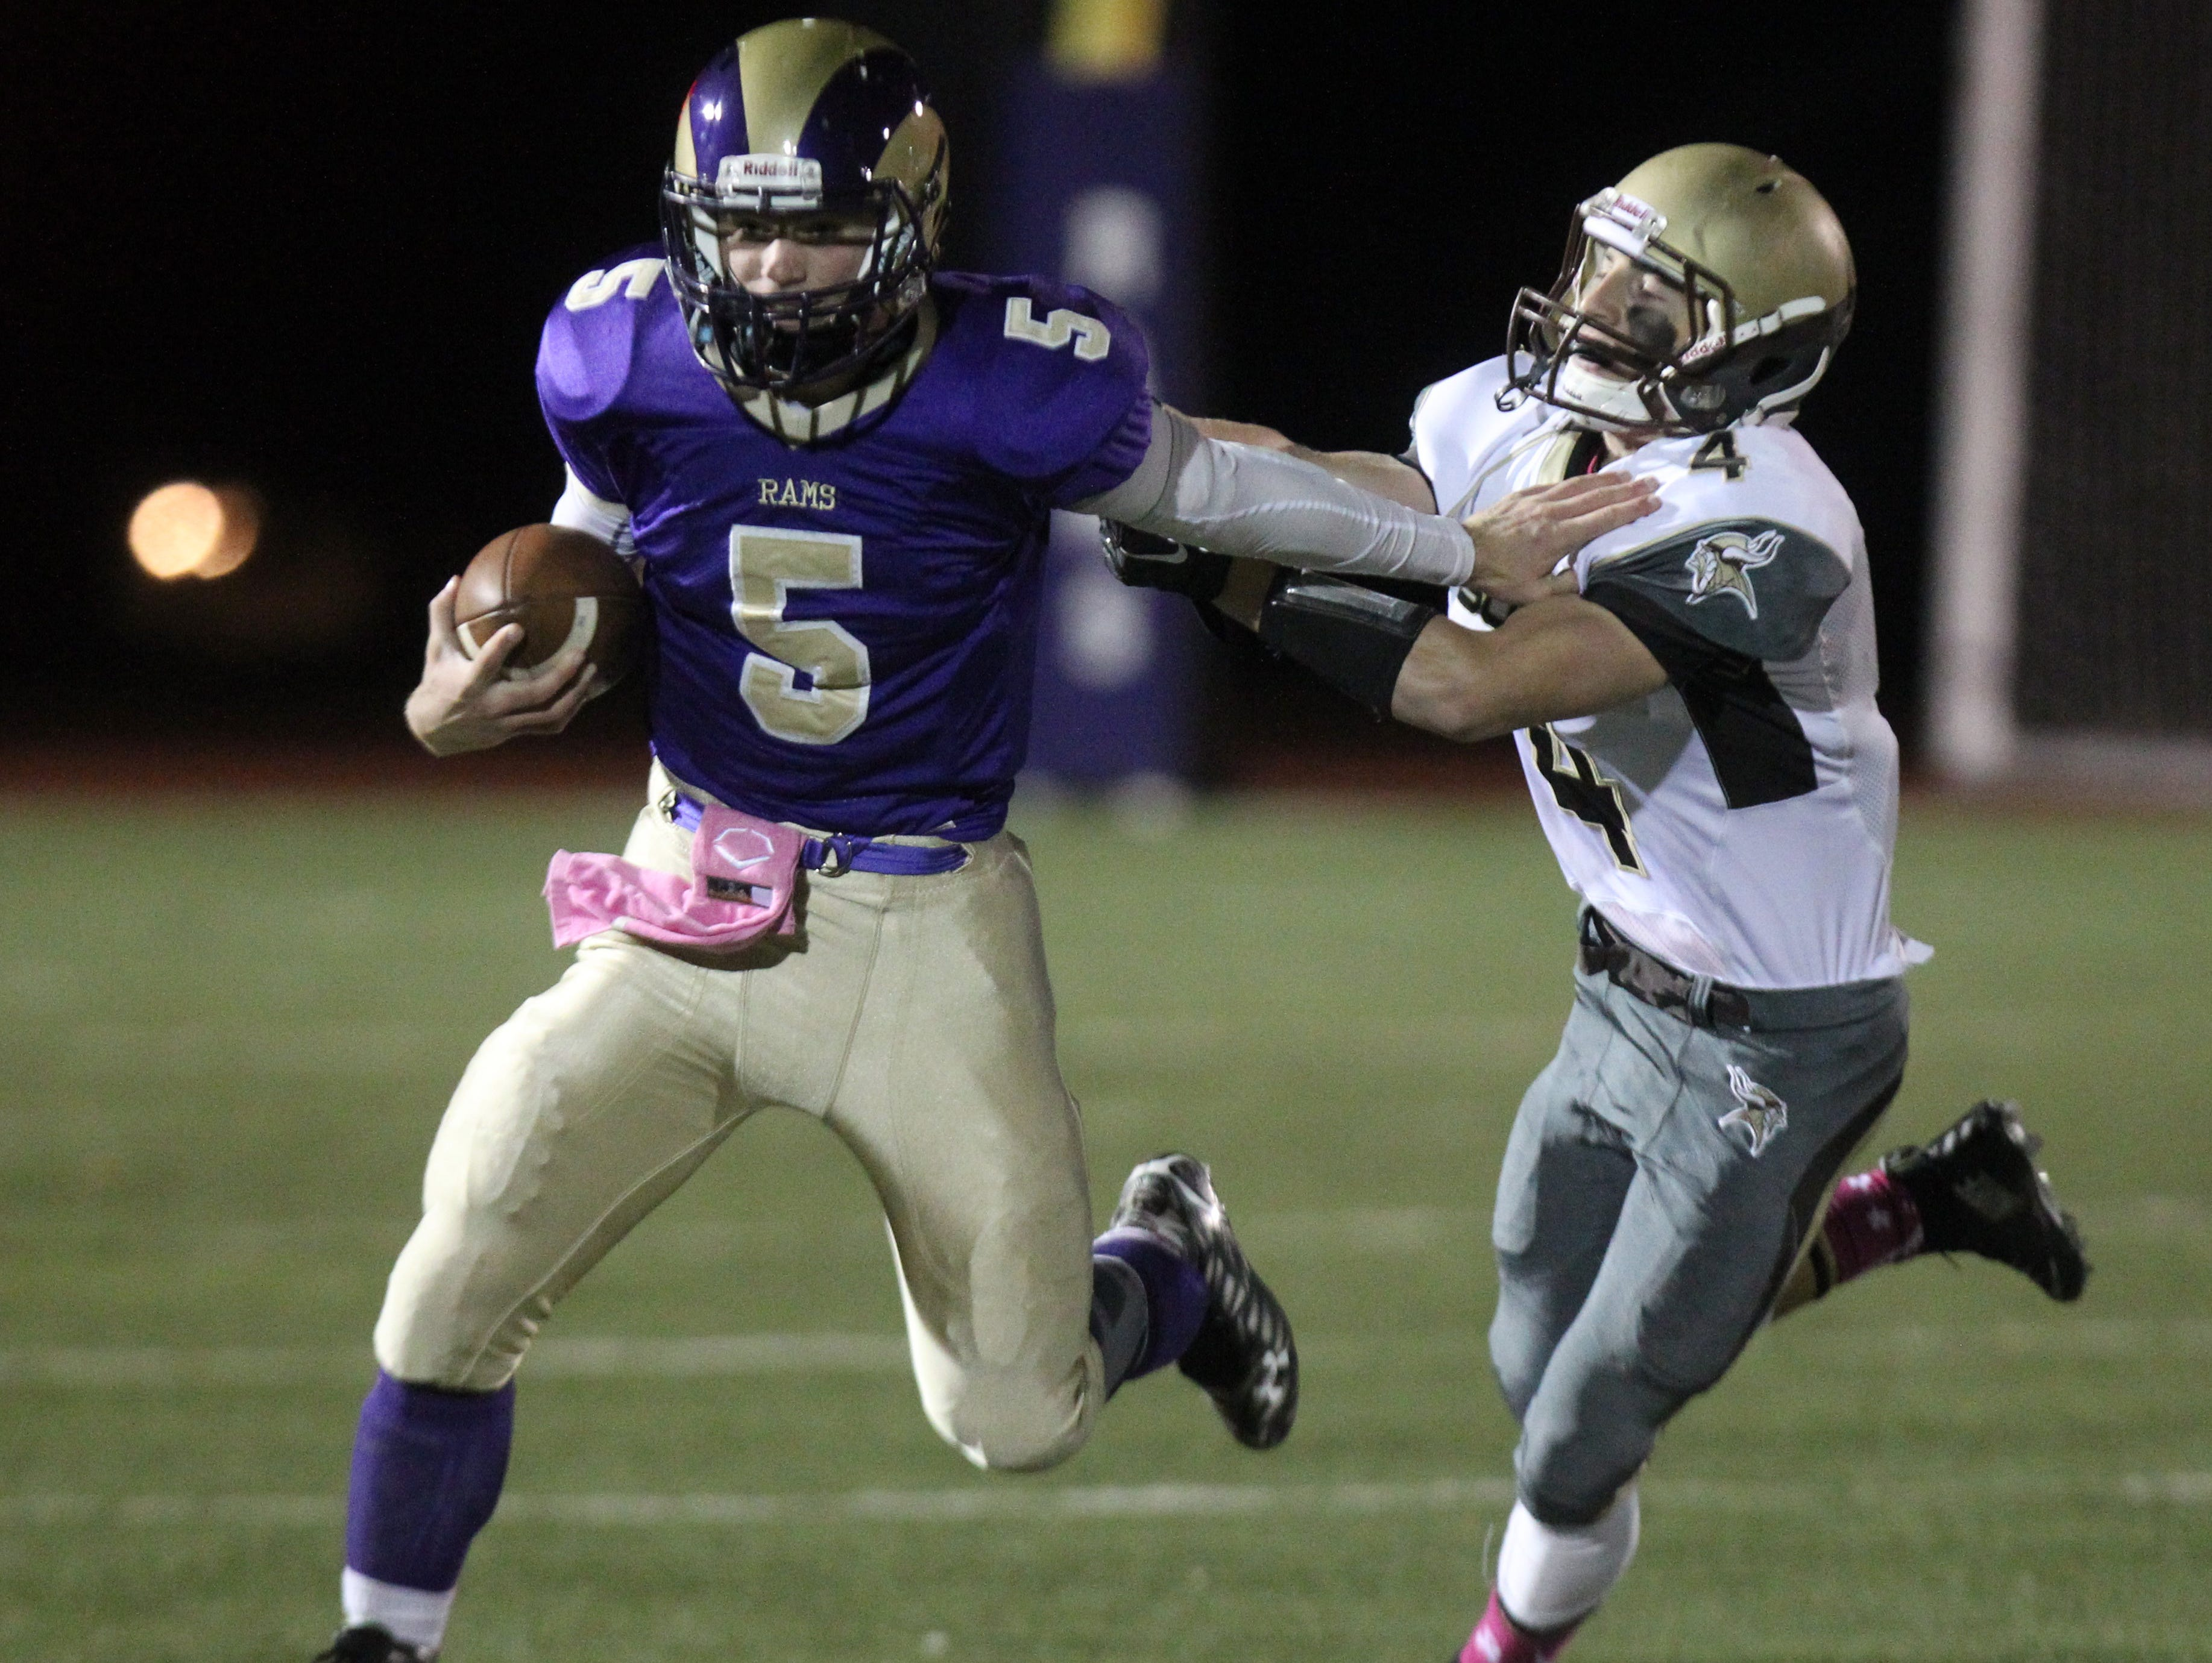 Clarkstown North's Jack Abrams straight-arms Clarkstown South's Kyle Samuels during their Class AA quarterfinal at Clarkstown North Oct. 23, 2015.